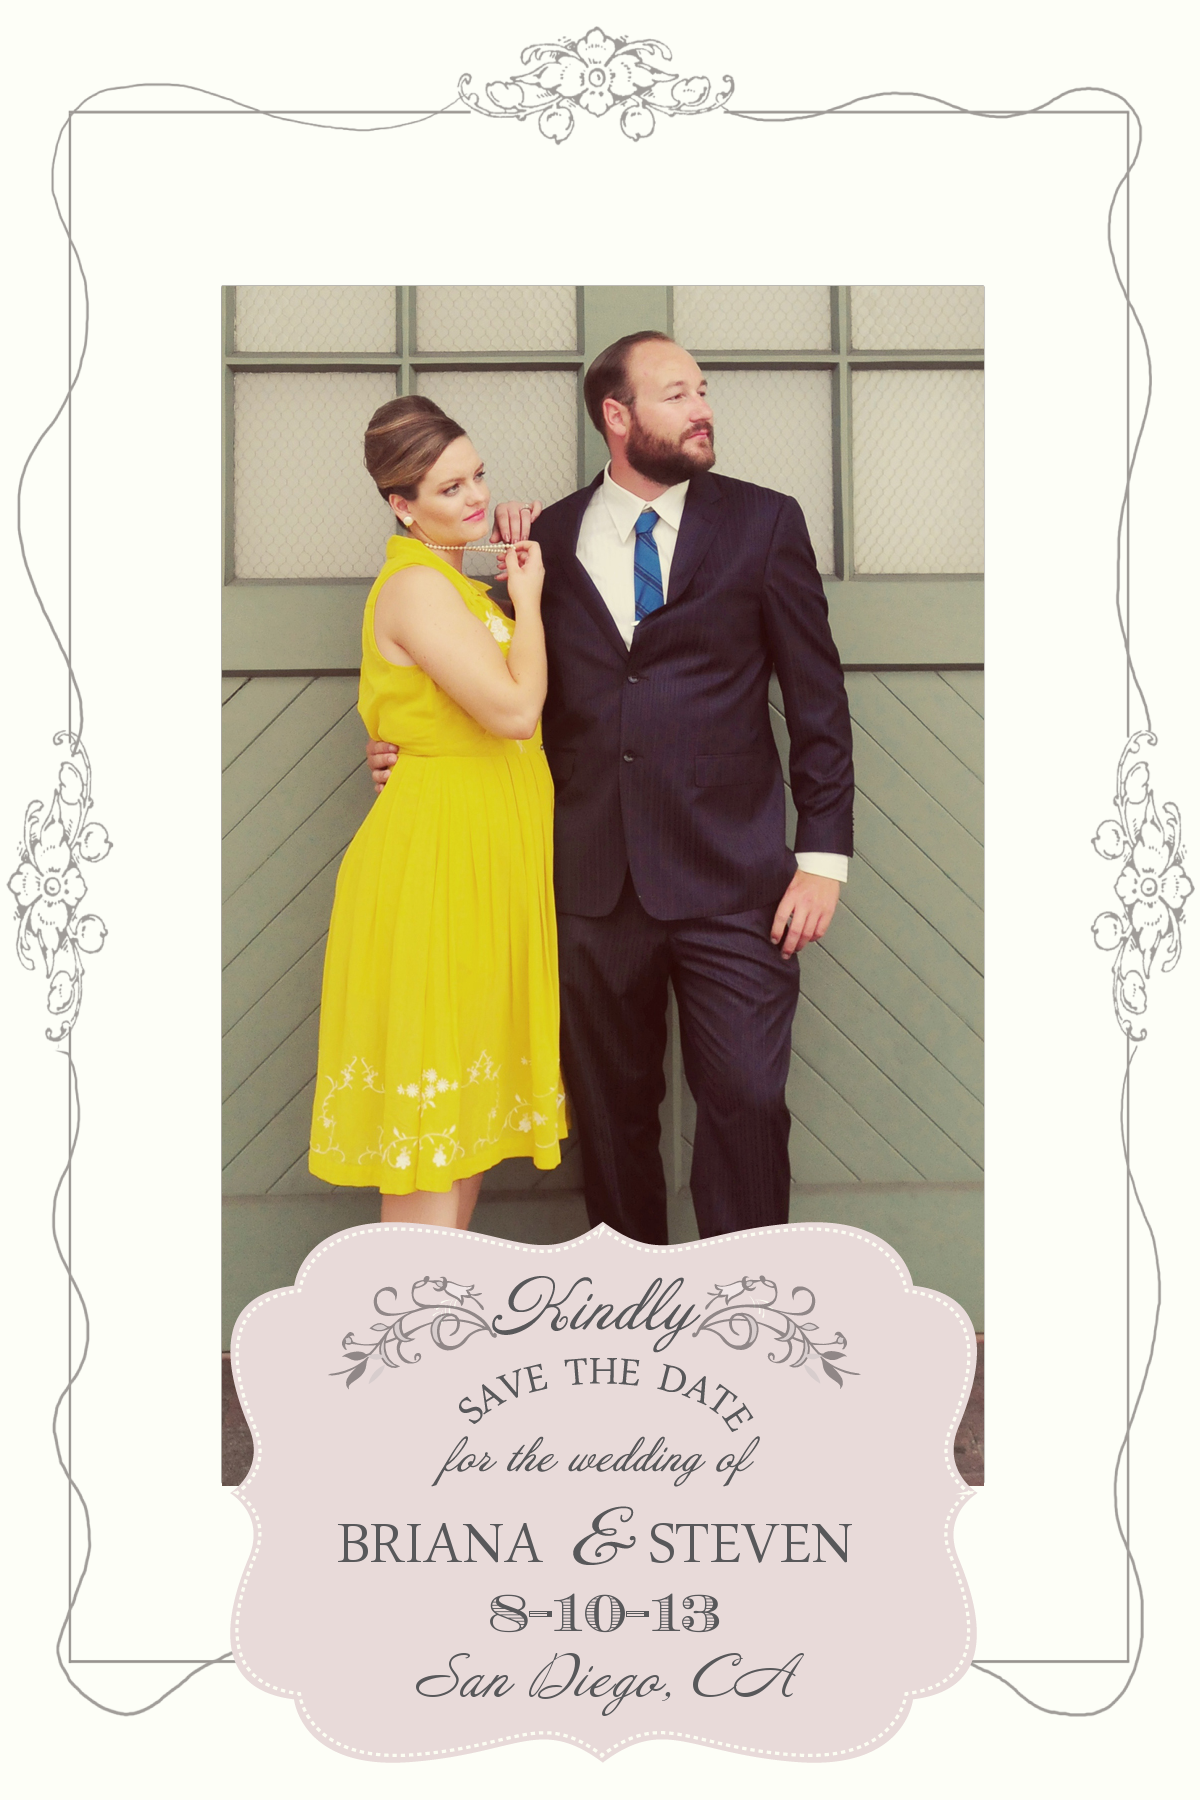 Mad Men Inspired Engagement Photoes For Save The Date Check Out Bumblebreeblogwordpress